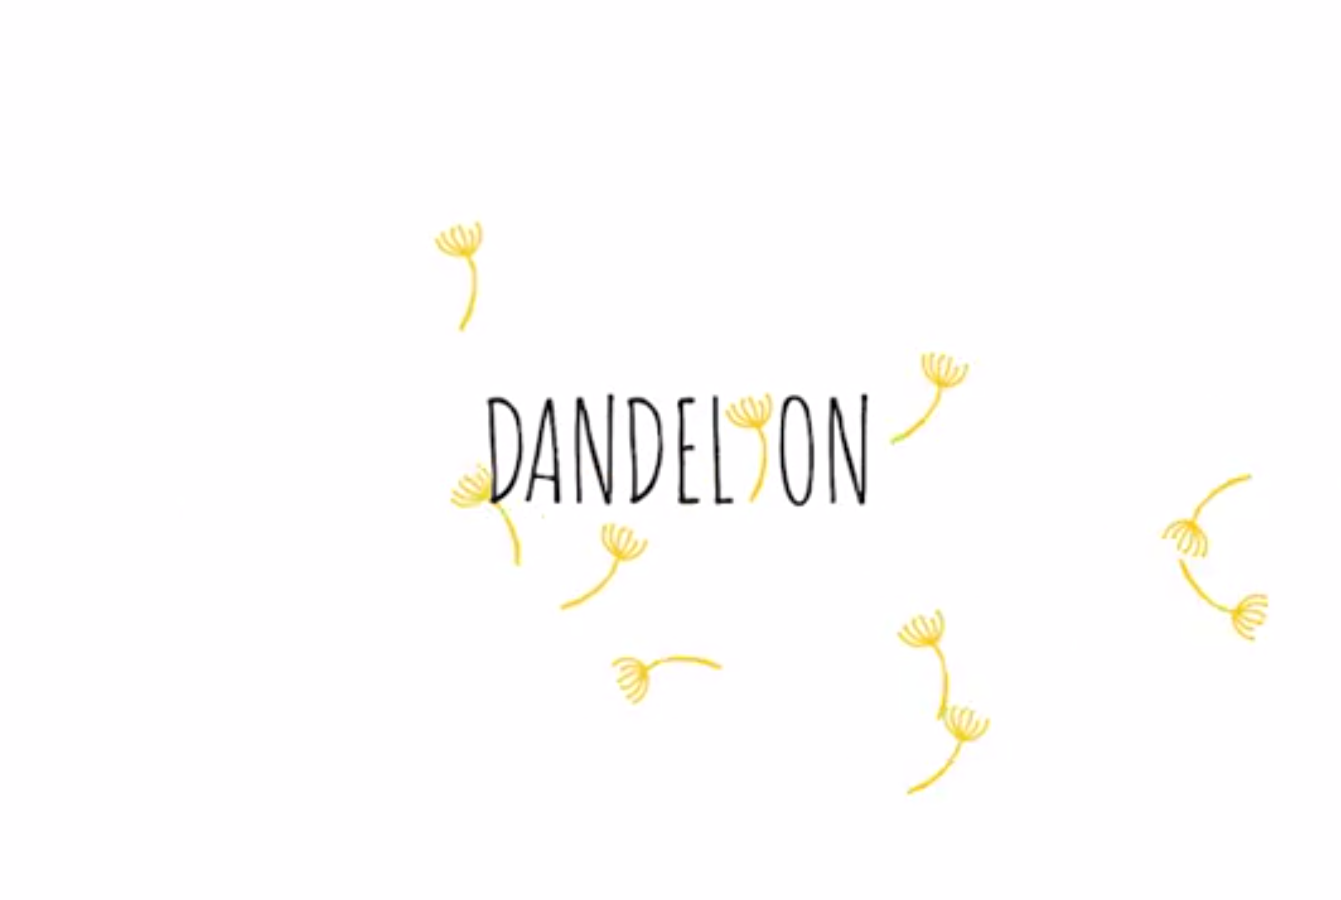 Dandelion Dance company – Promotional video